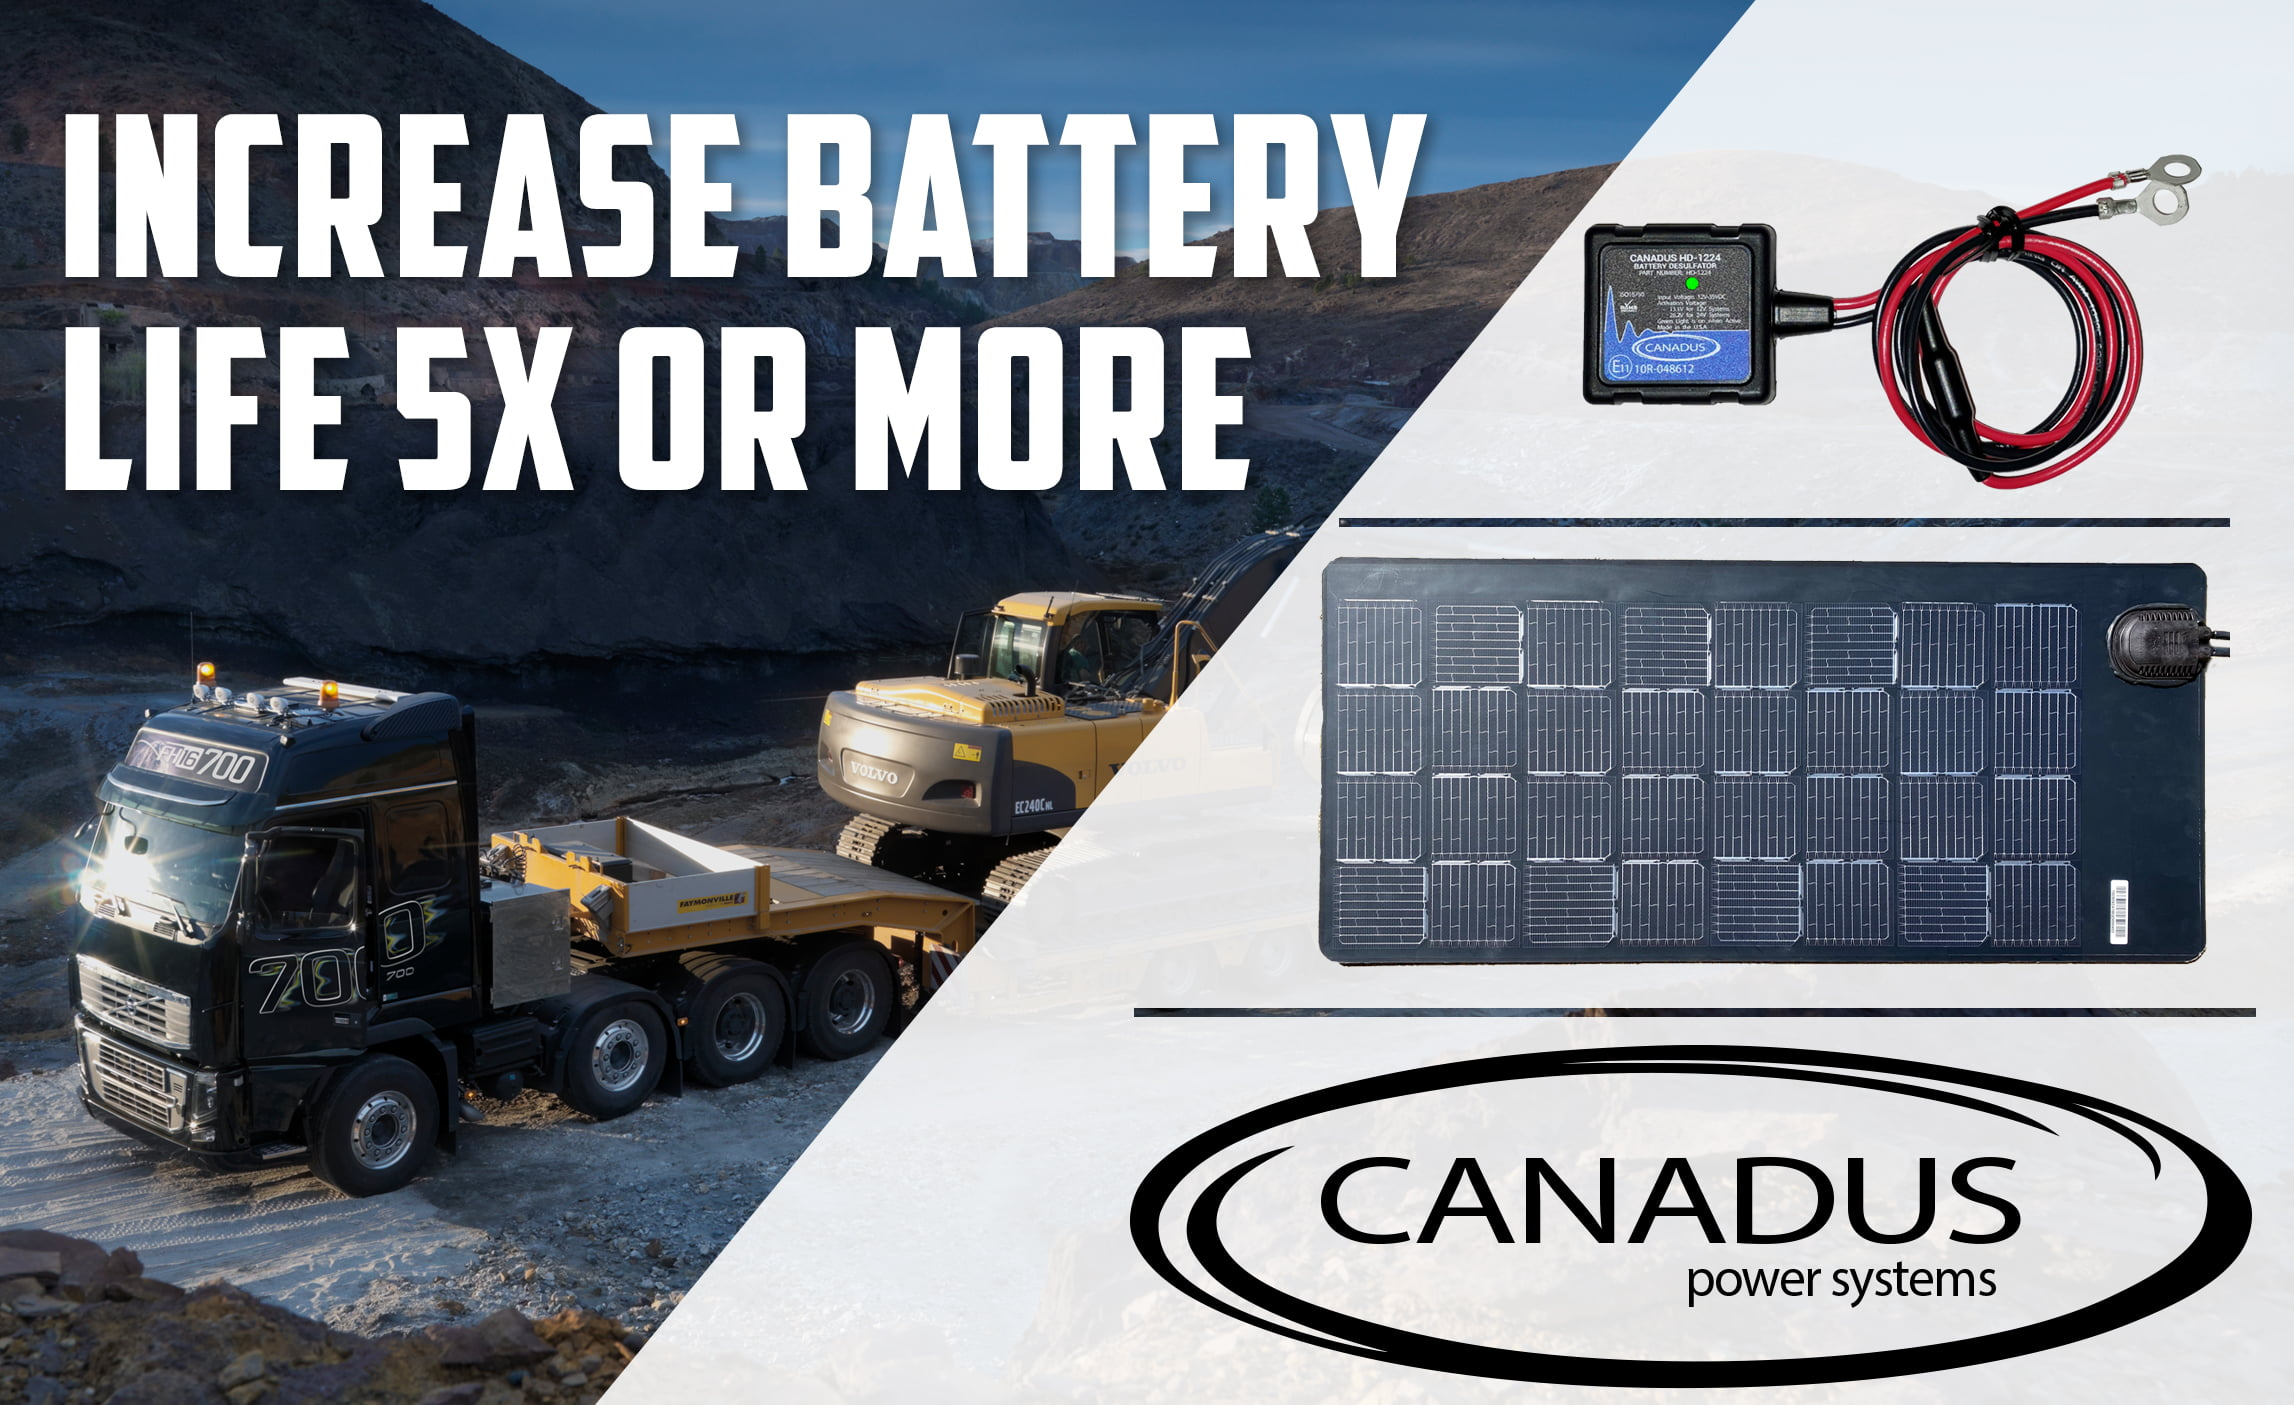 Canadus Power Systems and Merlin Solar Provide a New Method to Maintain Charged Batteries by Melding Two Proven Technologies